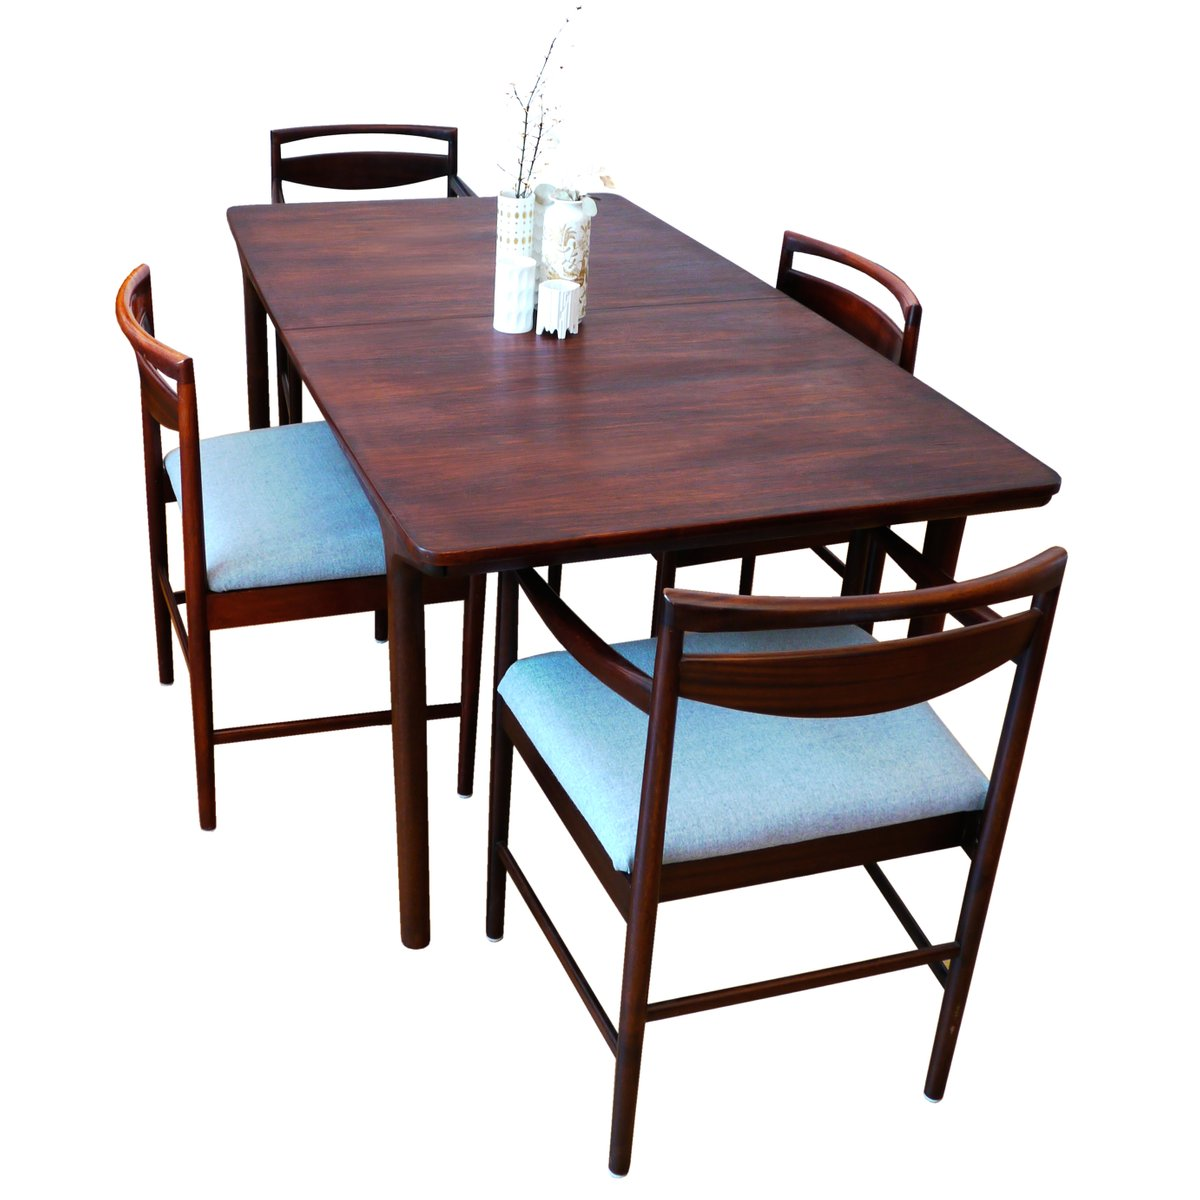 Grande table de salle manger rallonge mid century 12 for Table salle a manger 8 places